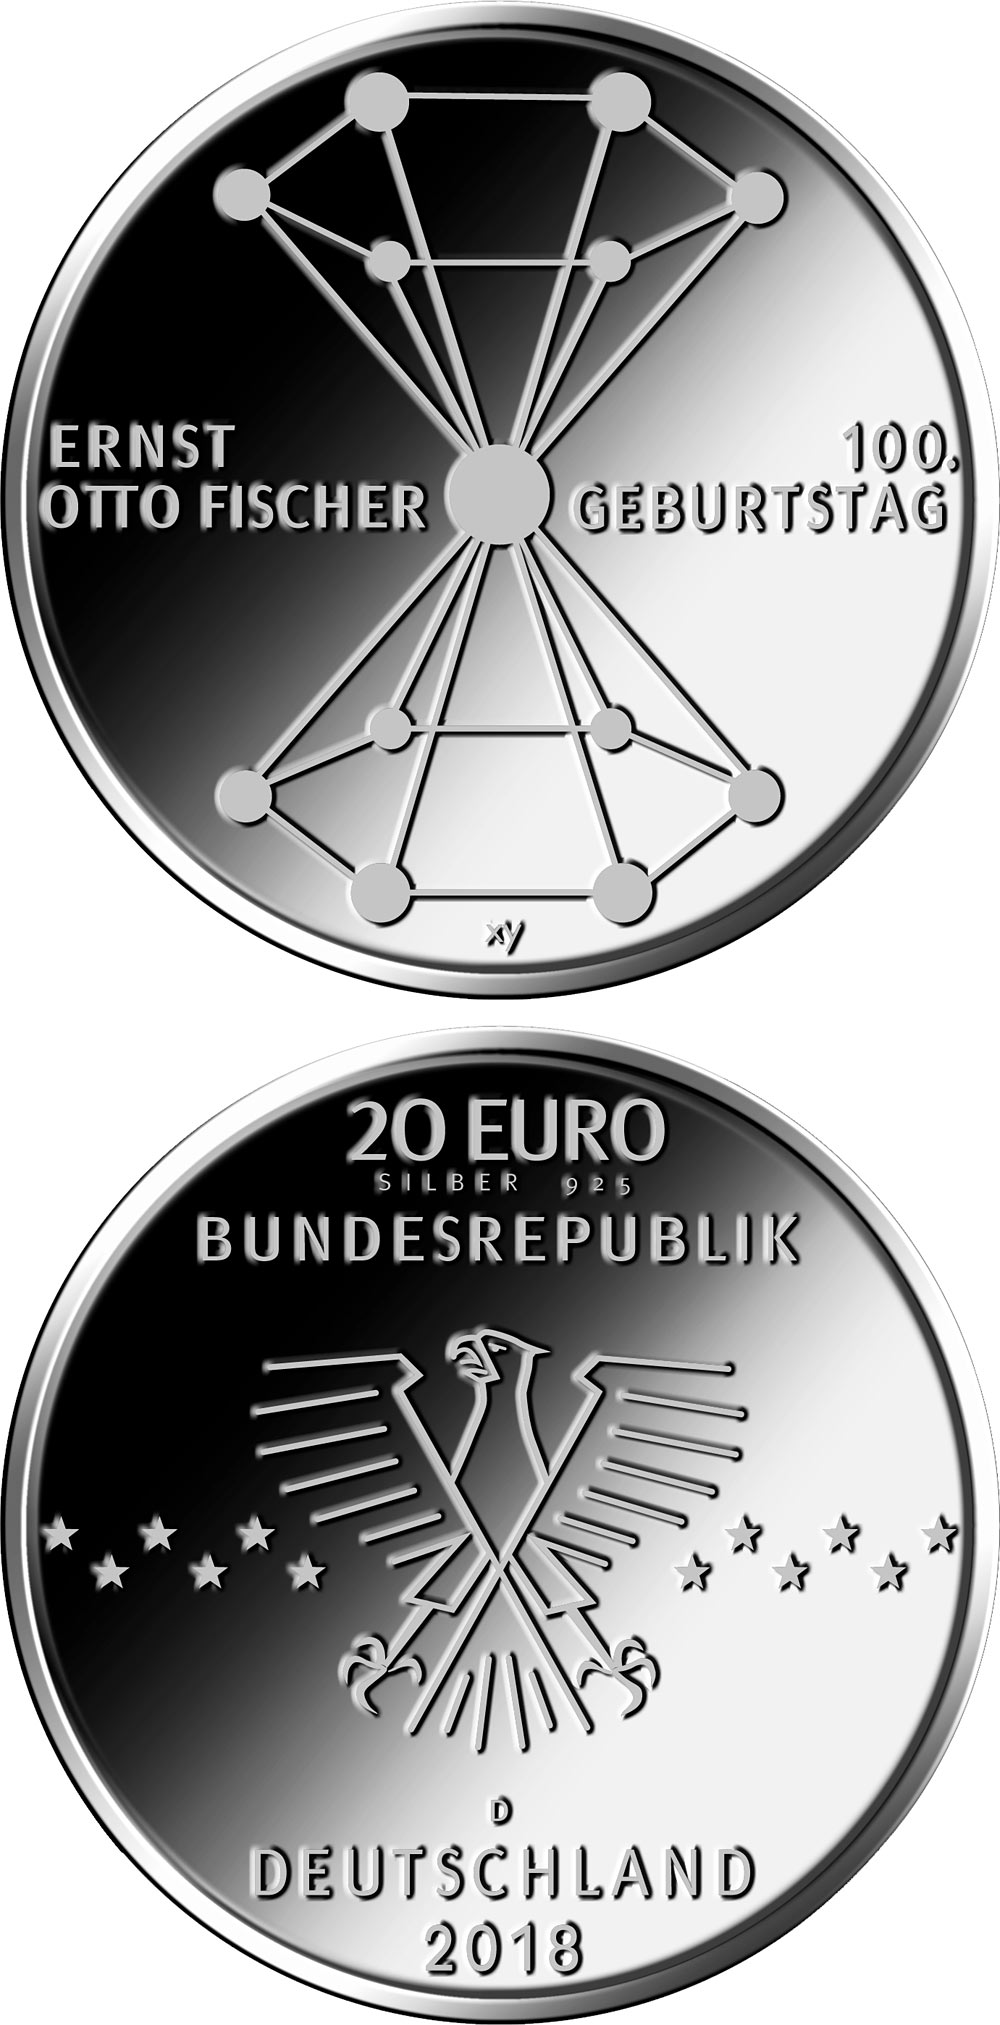 Image of 20 euro coin - 100. Geburtstag Ernst Otto Fischer | Germany 2018.  The Silver coin is of Proof, BU quality.